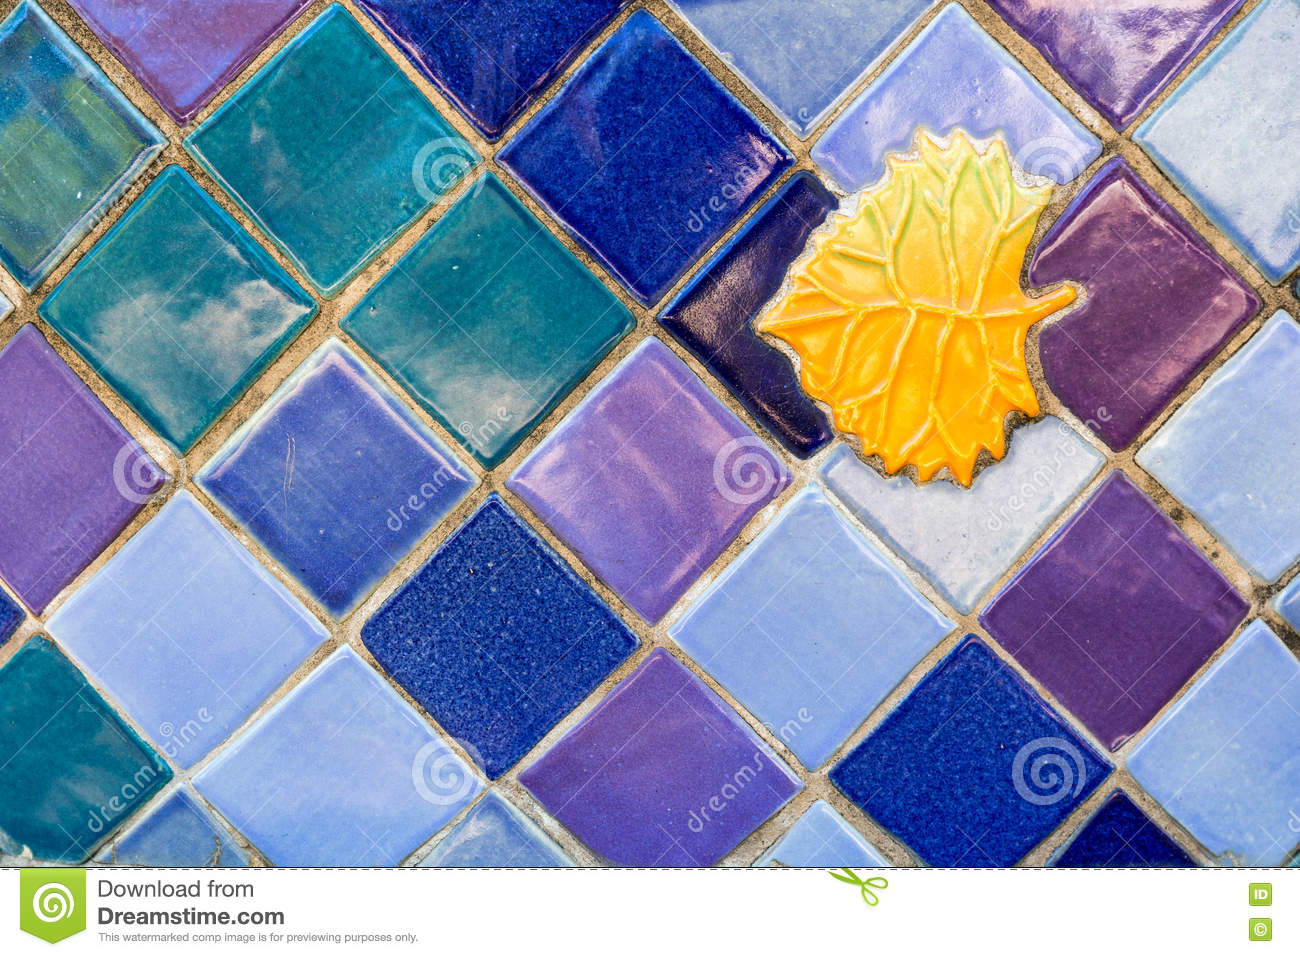 Colorful Ceramic Tile Background With Golden Leaf Inset. Stock Photo ...